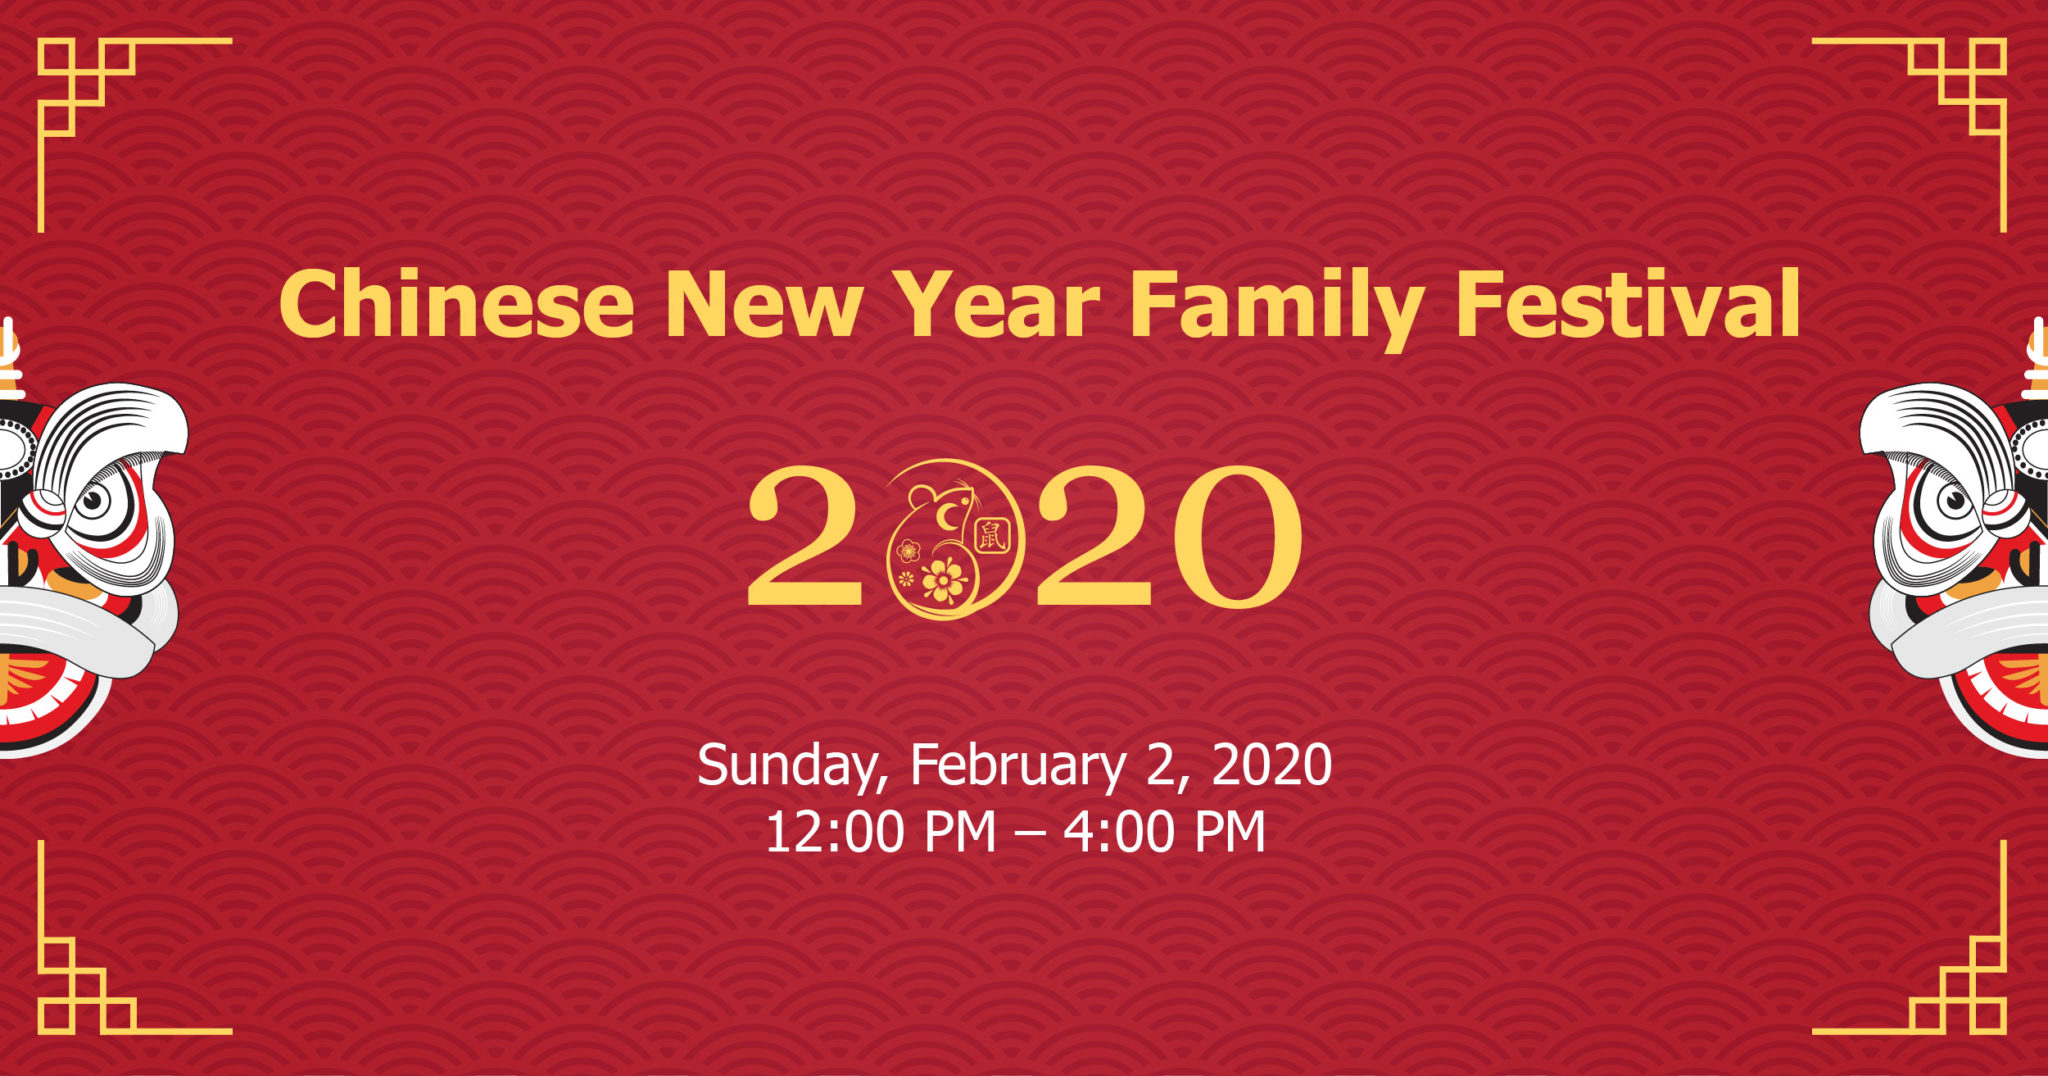 New York Times: CHINESE NEW YEAR FAMILY FESTIVAL